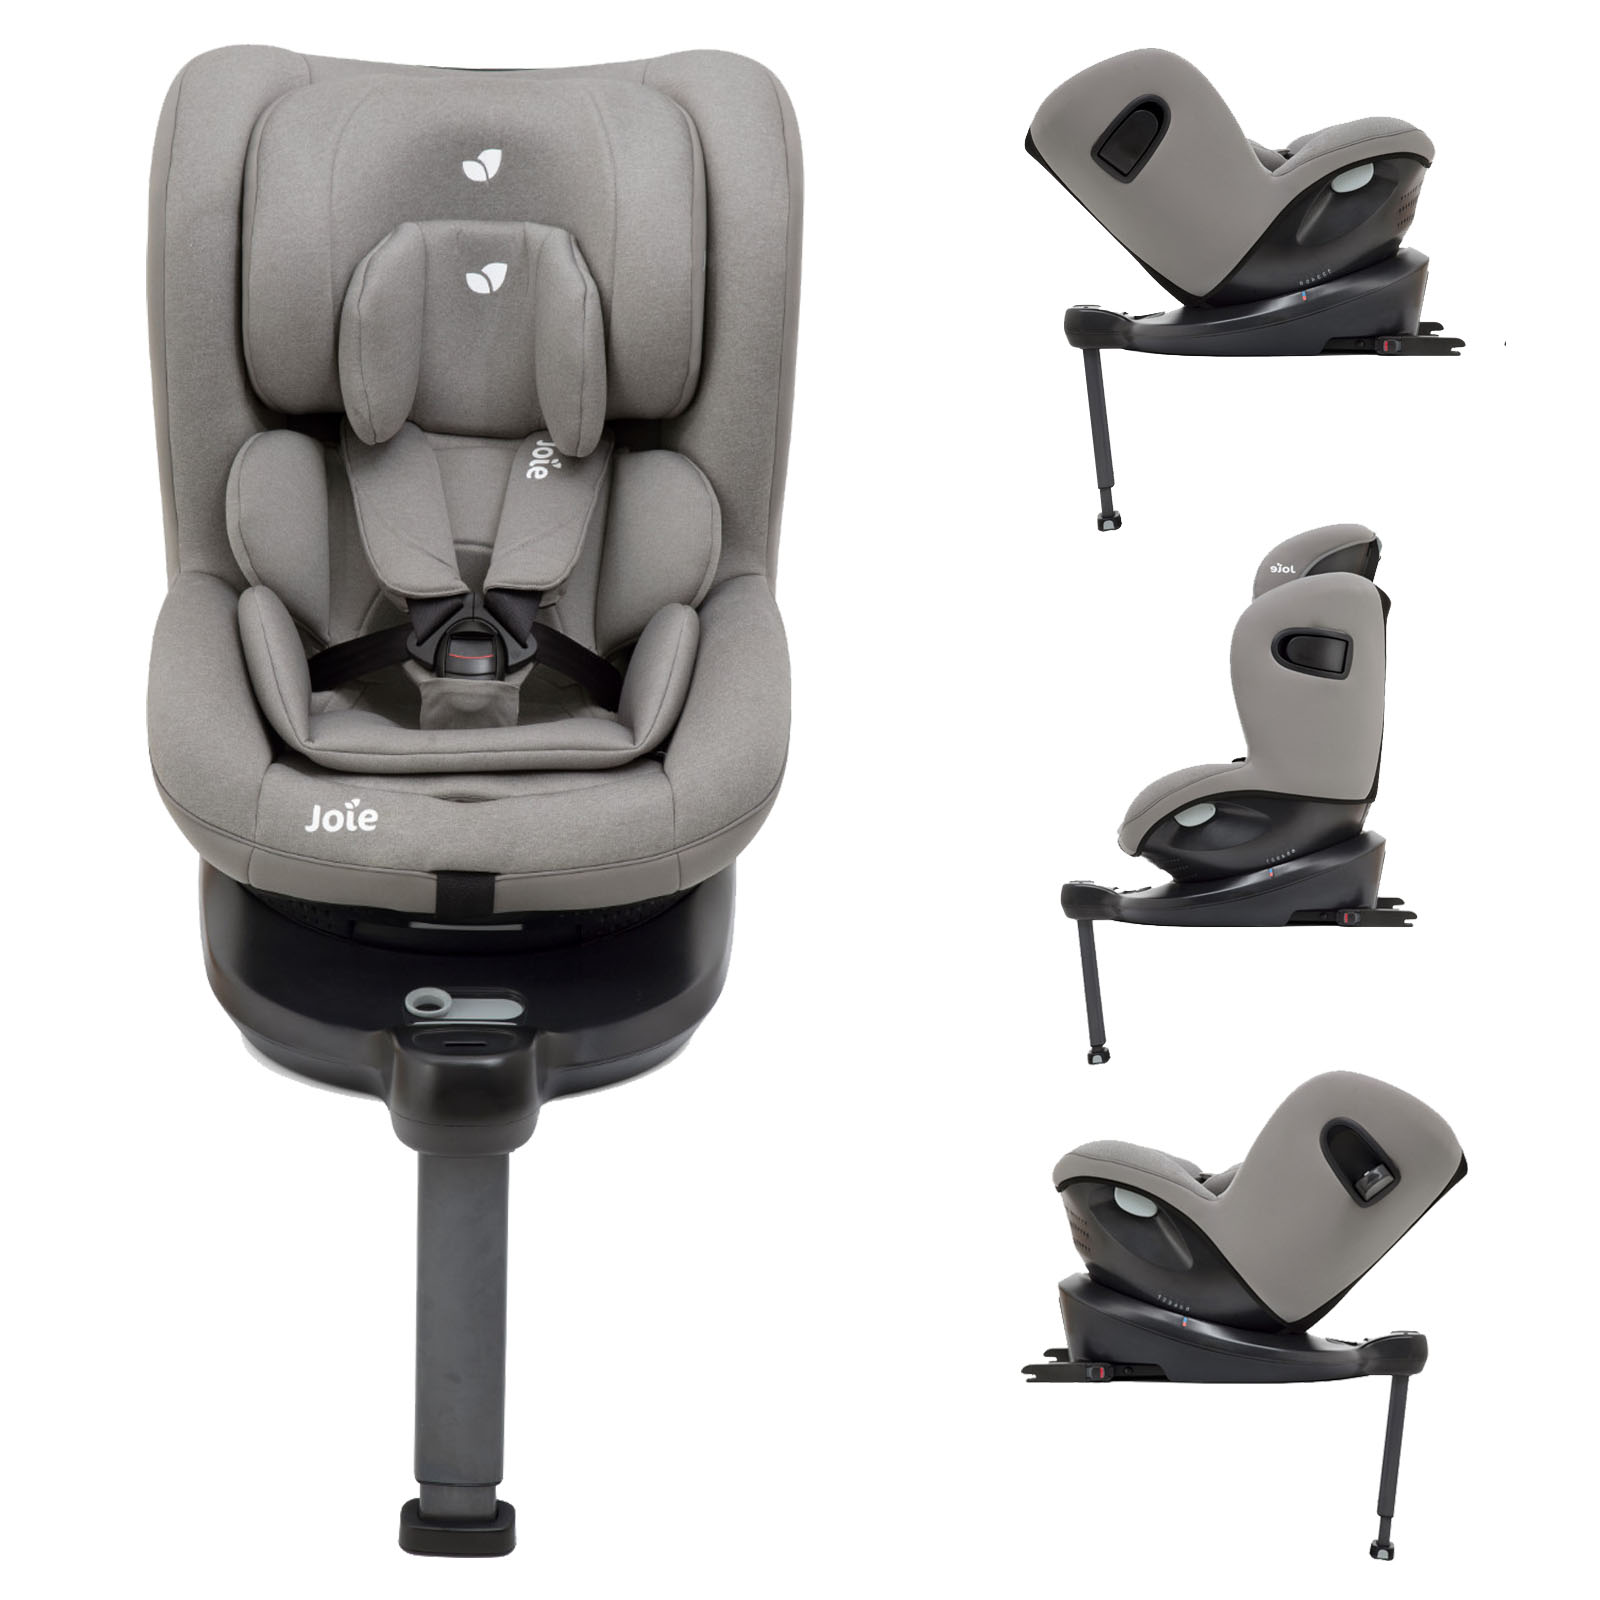 Joie 360 Isofix Installation Joie I Spin 360 Isize Group 1 Car Seat Grey Flannel